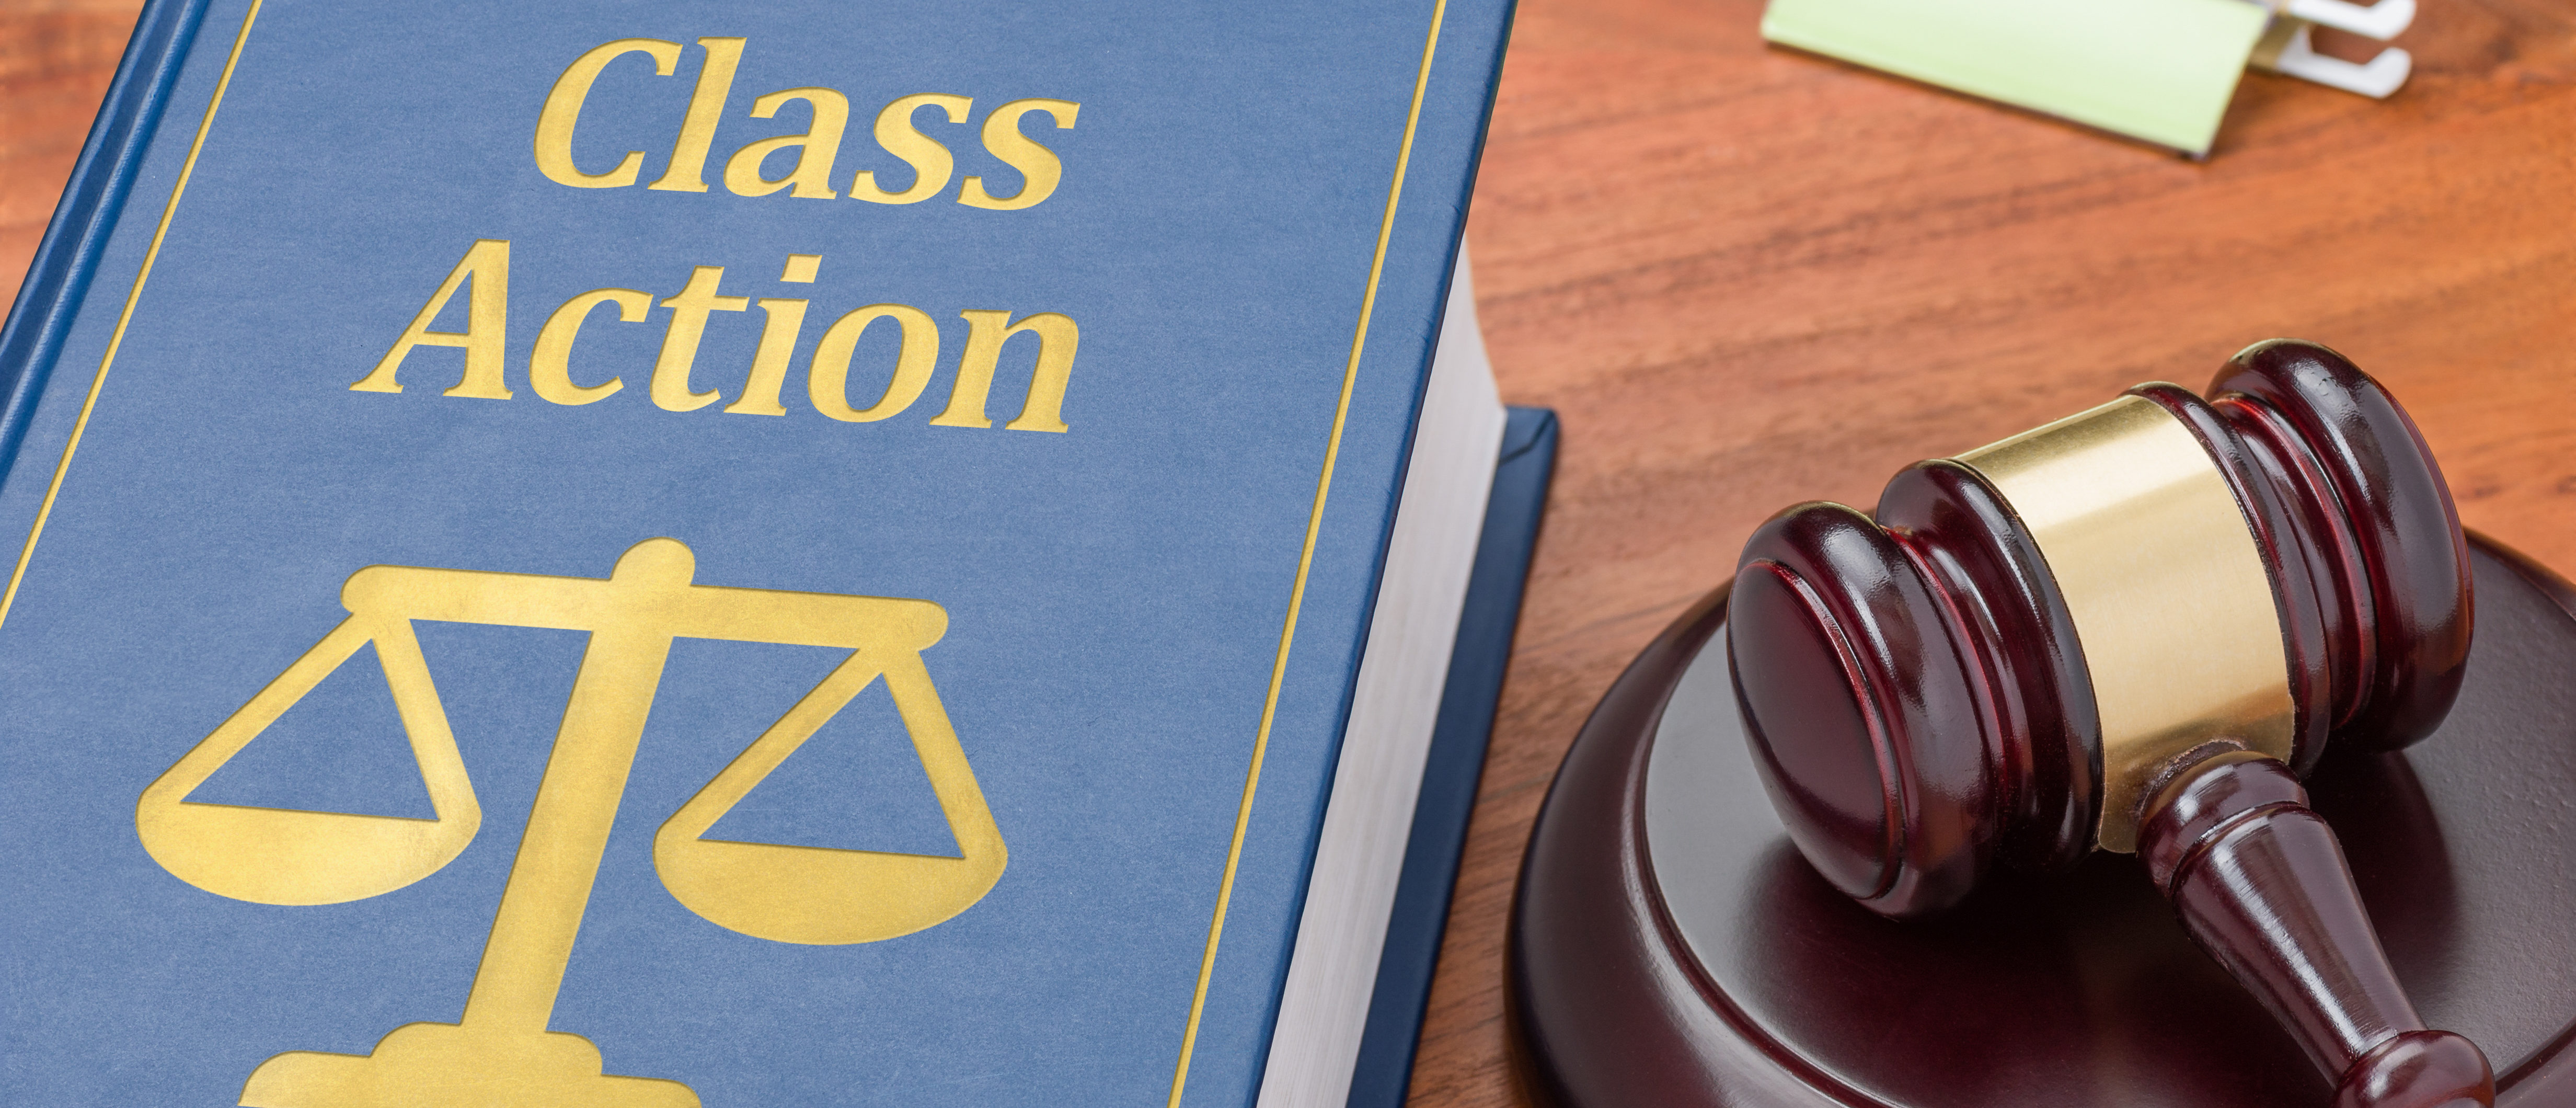 Class_Action_Law | Source:  Zerbor/Shutterstock | Trial Lawyers Payday Climate Lawsuits